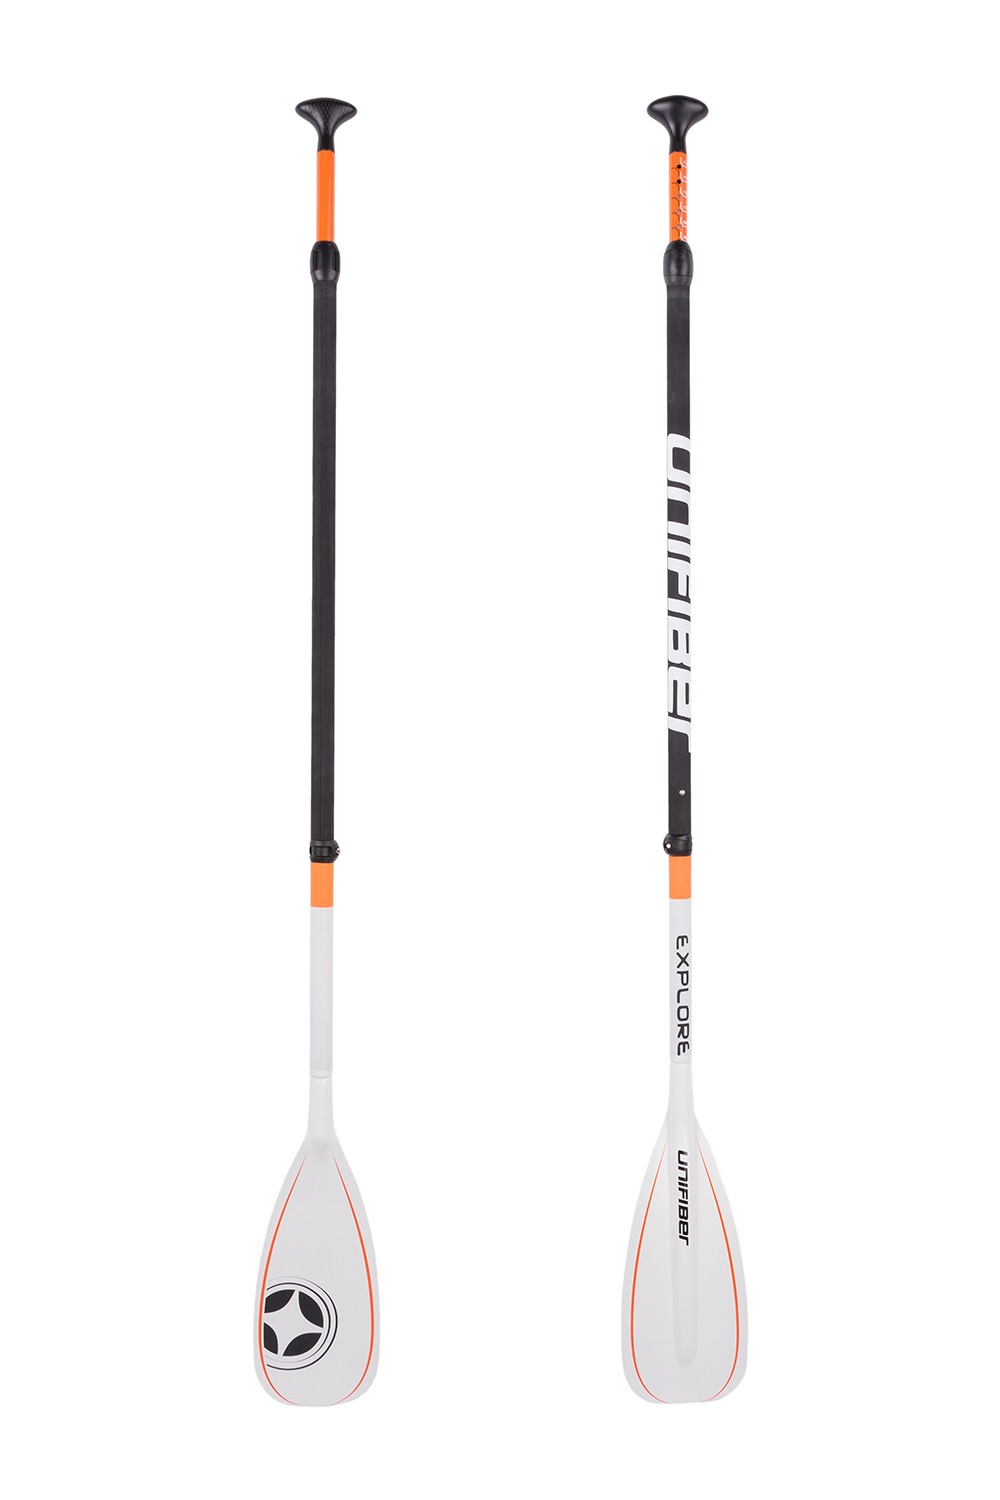 Glass Sup Paddle 3 PC Explorer 170 - 220